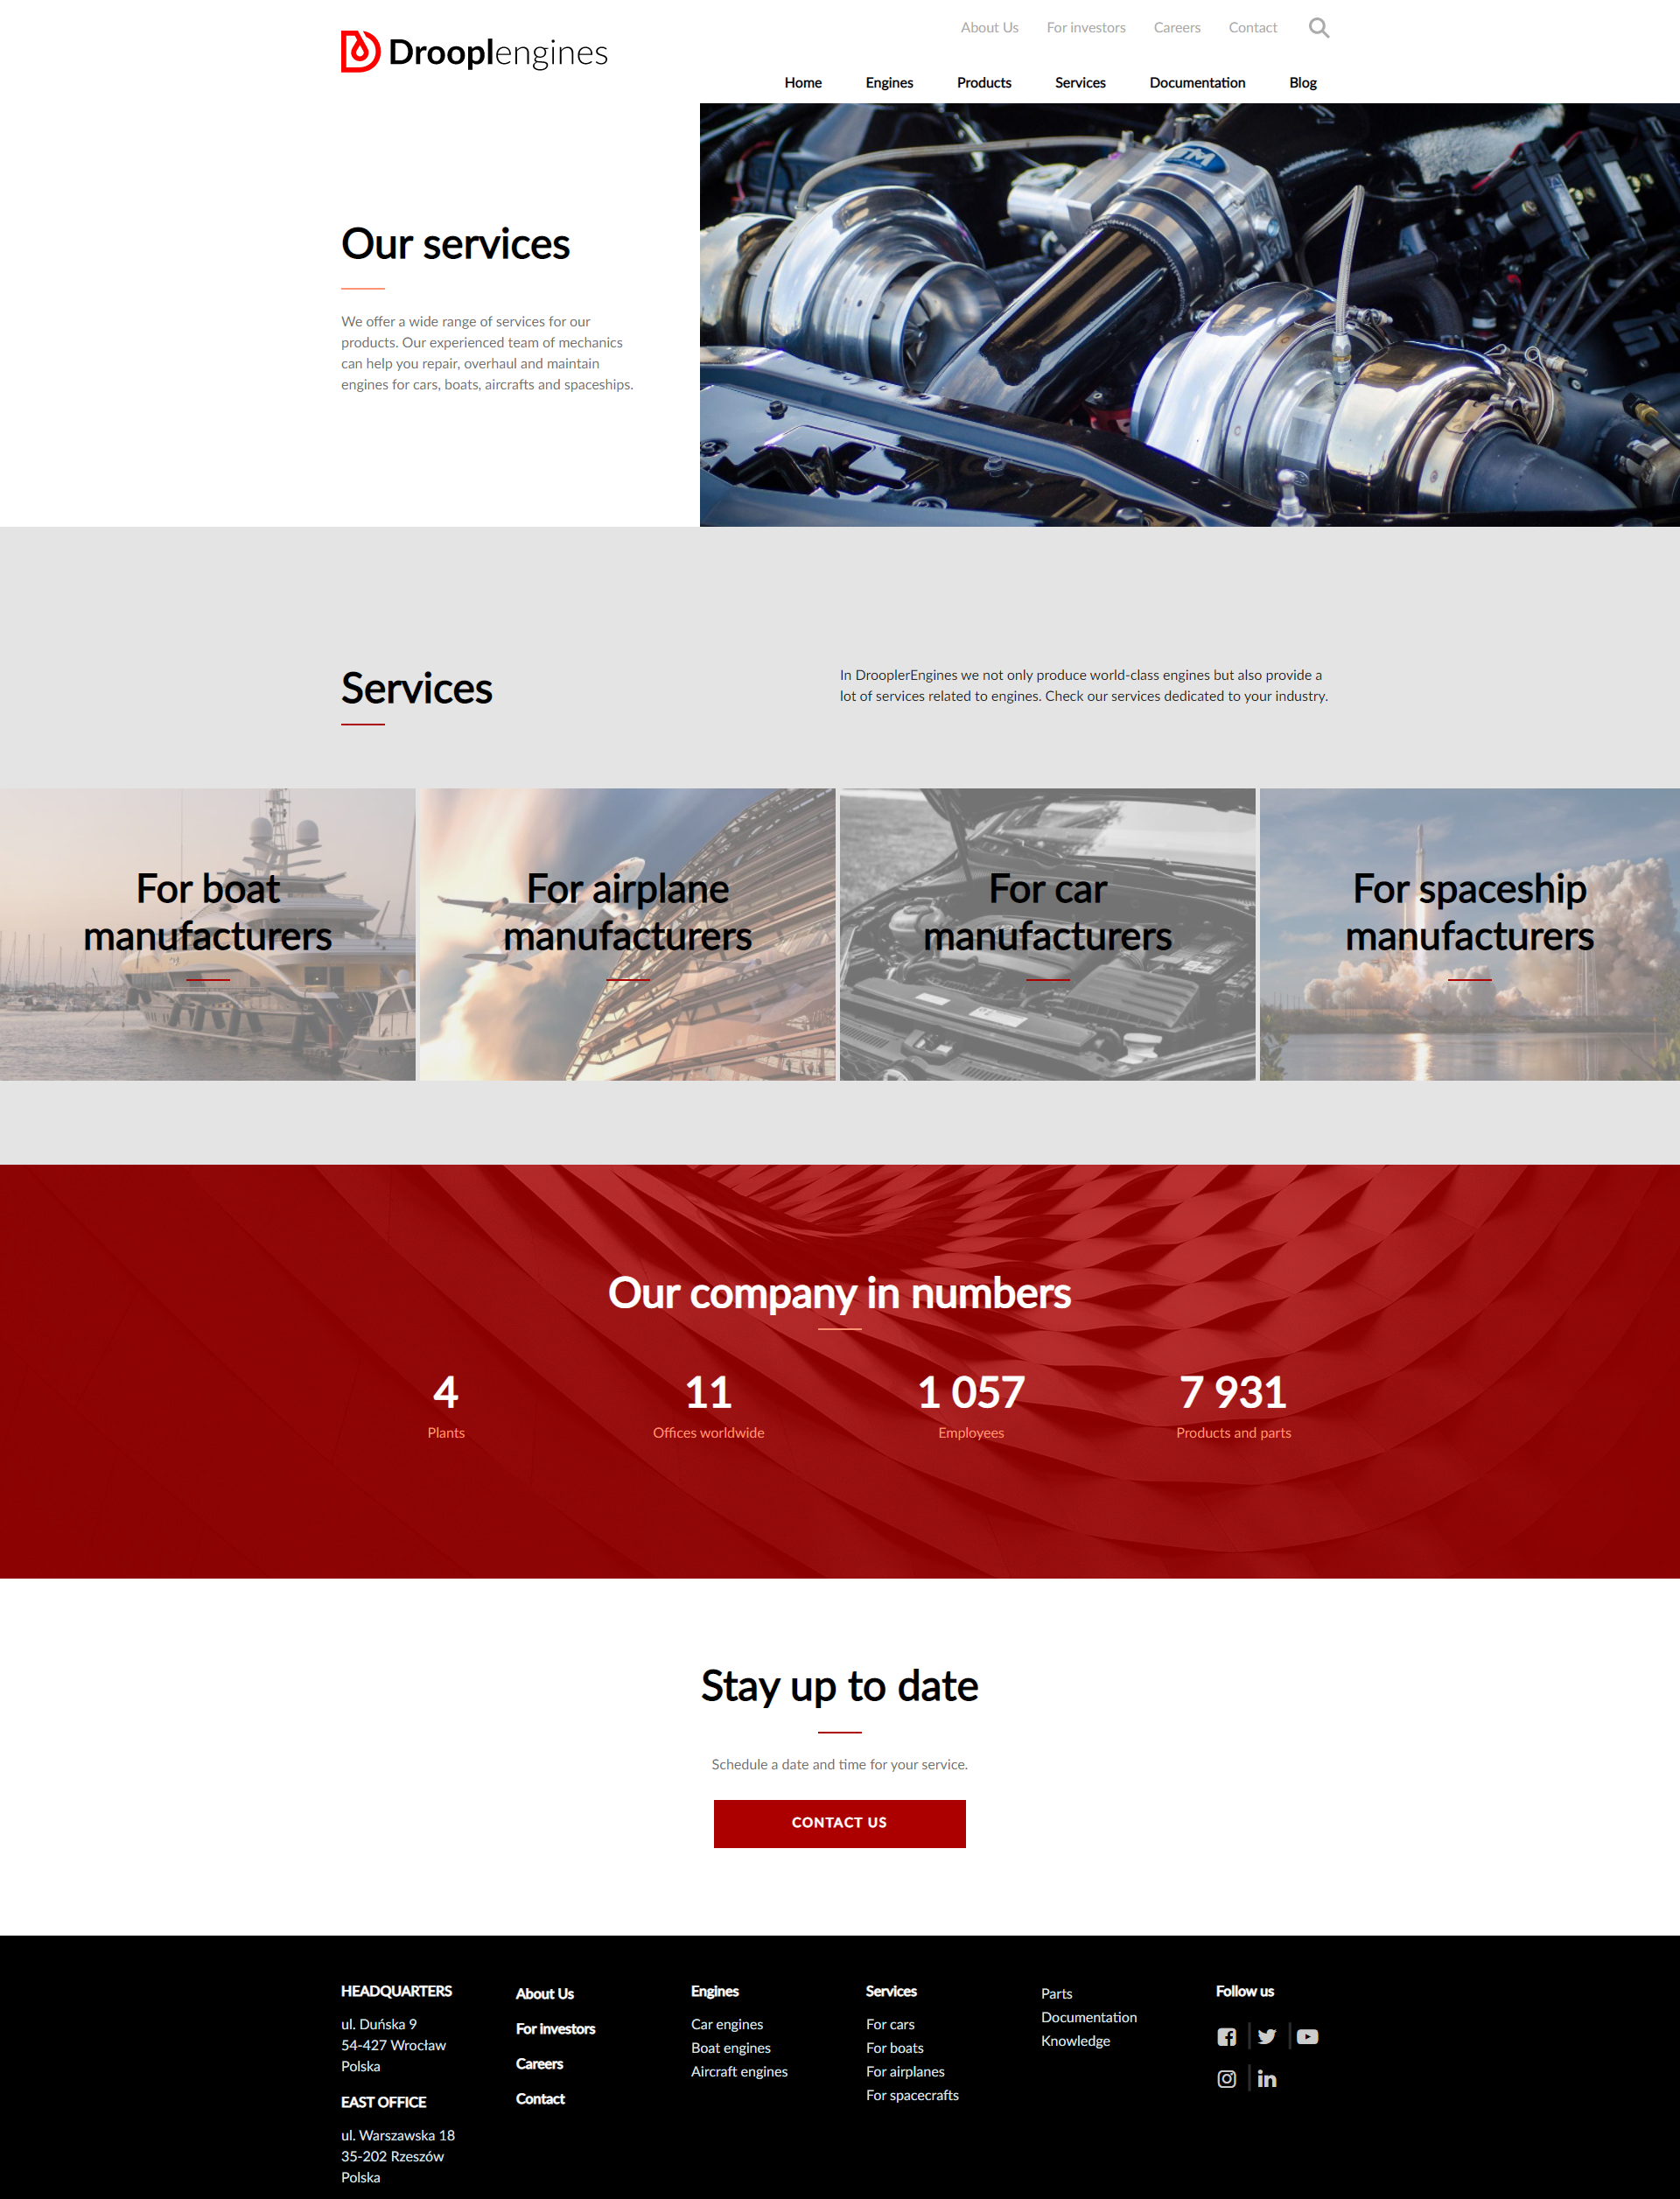 The ready services page in Droopler